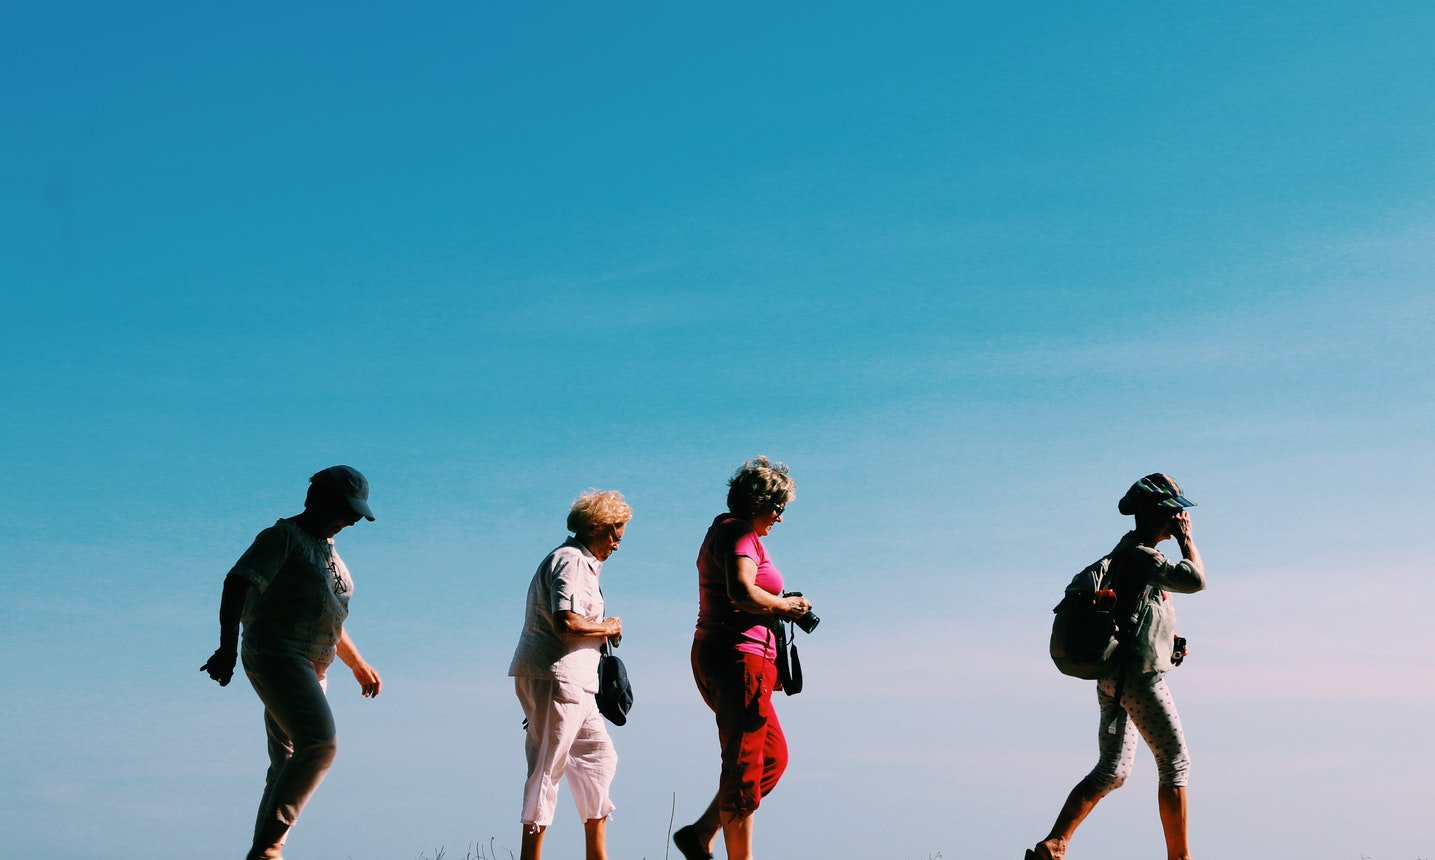 A group of elderly women hiking. The benefits of the outdoors for seniors are very high.